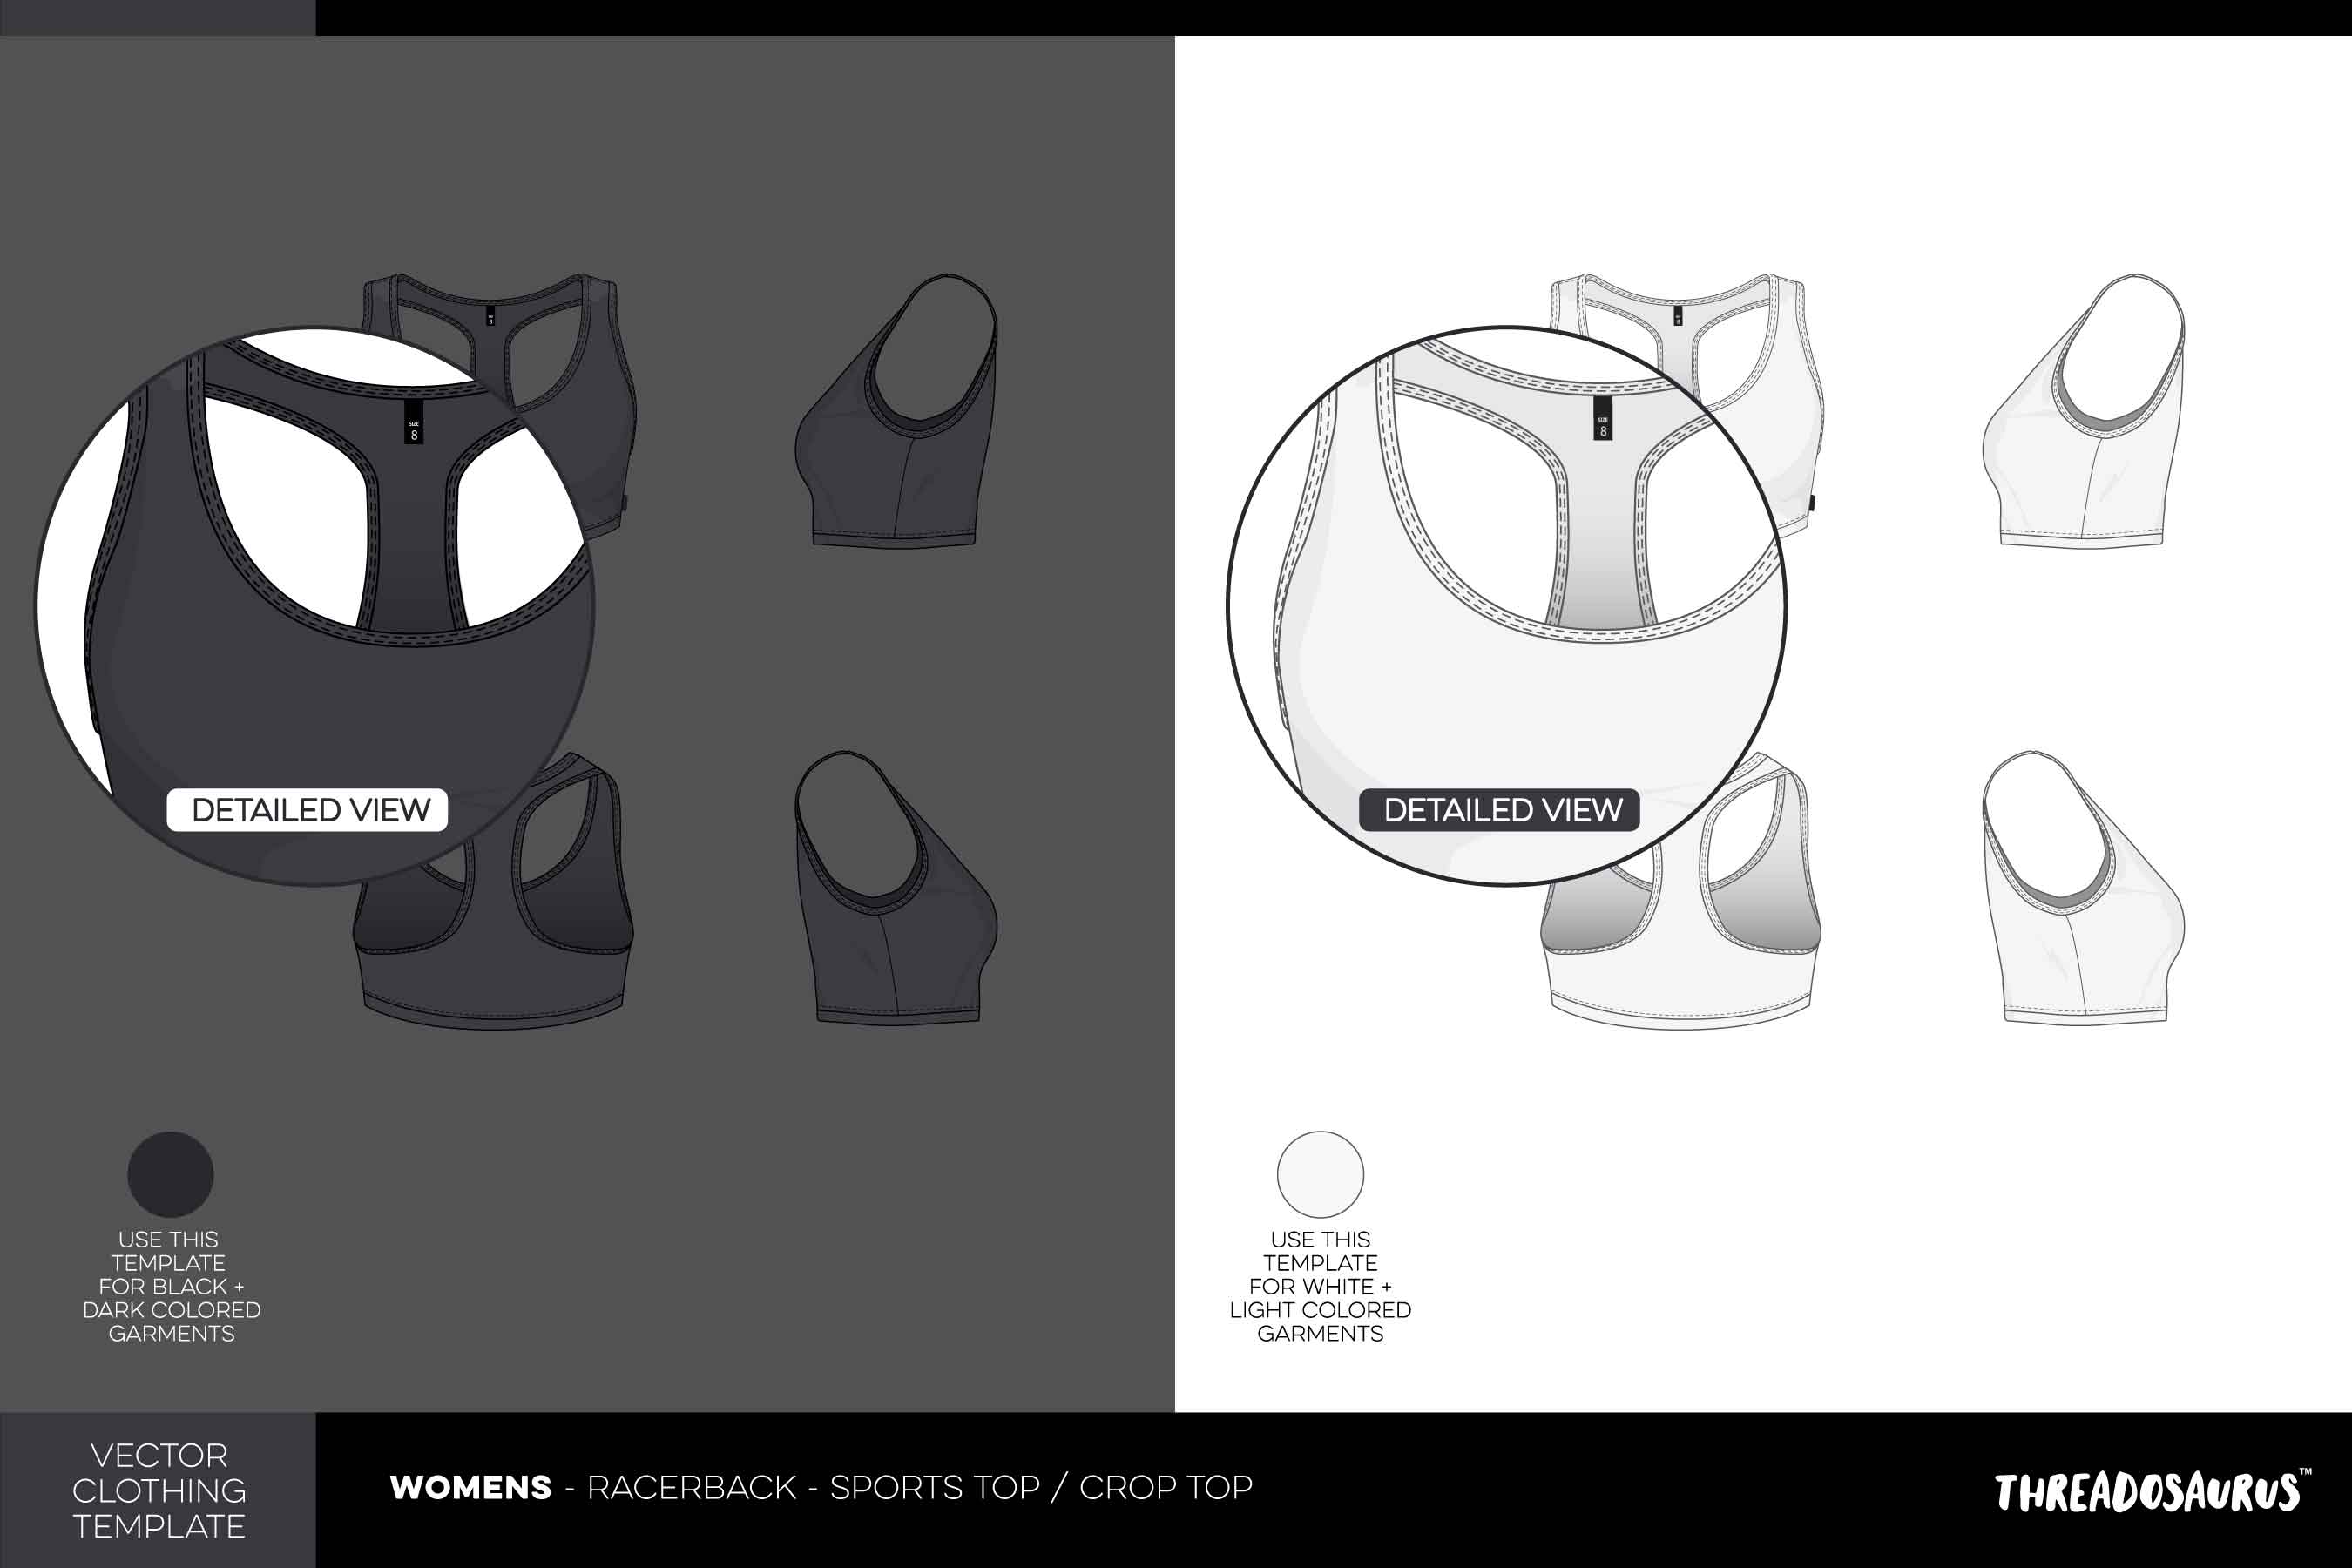 Womens Racerback Sports Crop Top Template - Vector Pack